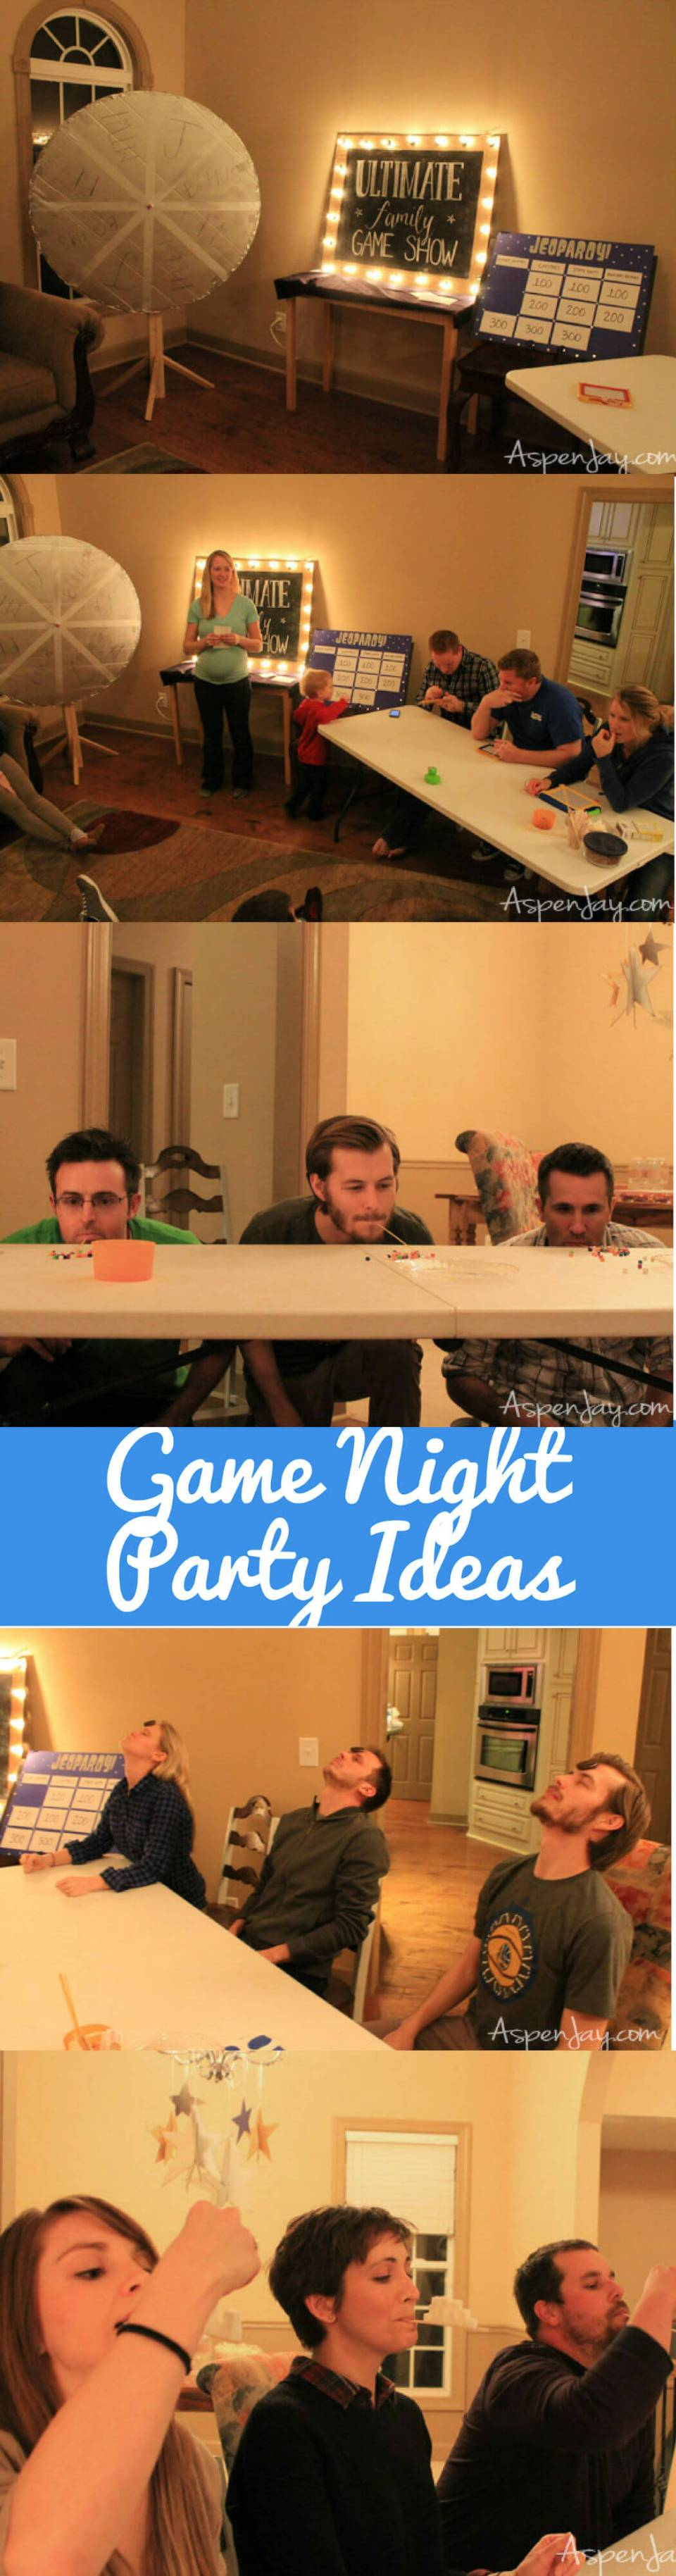 Fun Game Night Party Ideas | Christmas Party Games for Adults - FarmFoodFamily.com